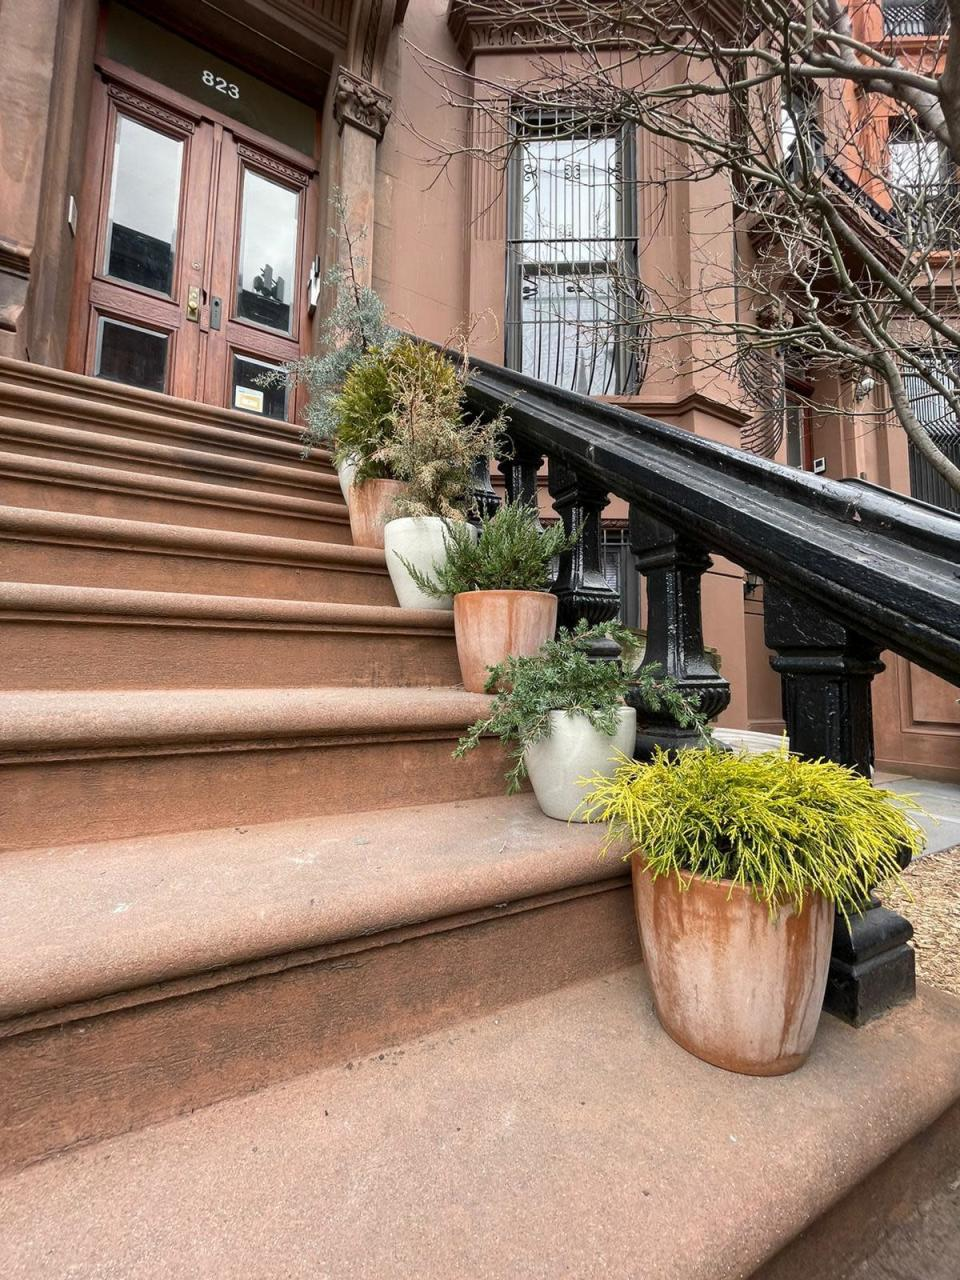 "A procession of conifers in sturdy pots provide a welcoming guide up the stairs to the stoop of this brownstone in the Brooklyn borough of New York. Front stoops have long welcomed visitors to city homes, and have served as gathering spots for friends and neighbors engaging in what urban design activist Jane Jacobs called ""the sidewalk ballet."" (Kate Cook via AP)"